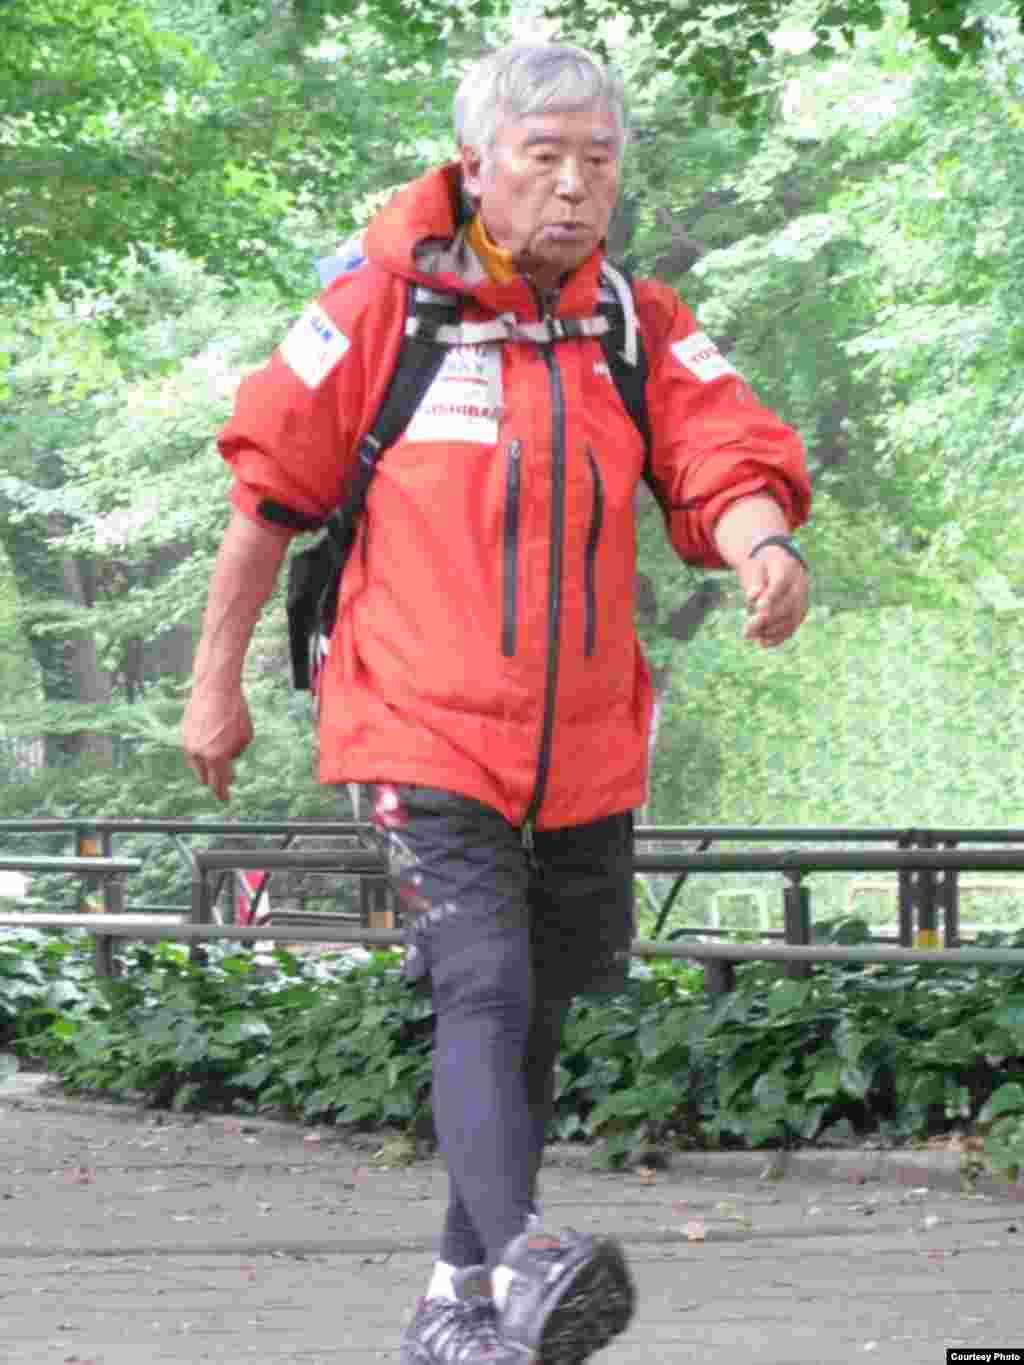 Yuichiro Miura training in Tokyo for his 2013 climb up Mount Everest. (Miura Dolphins)